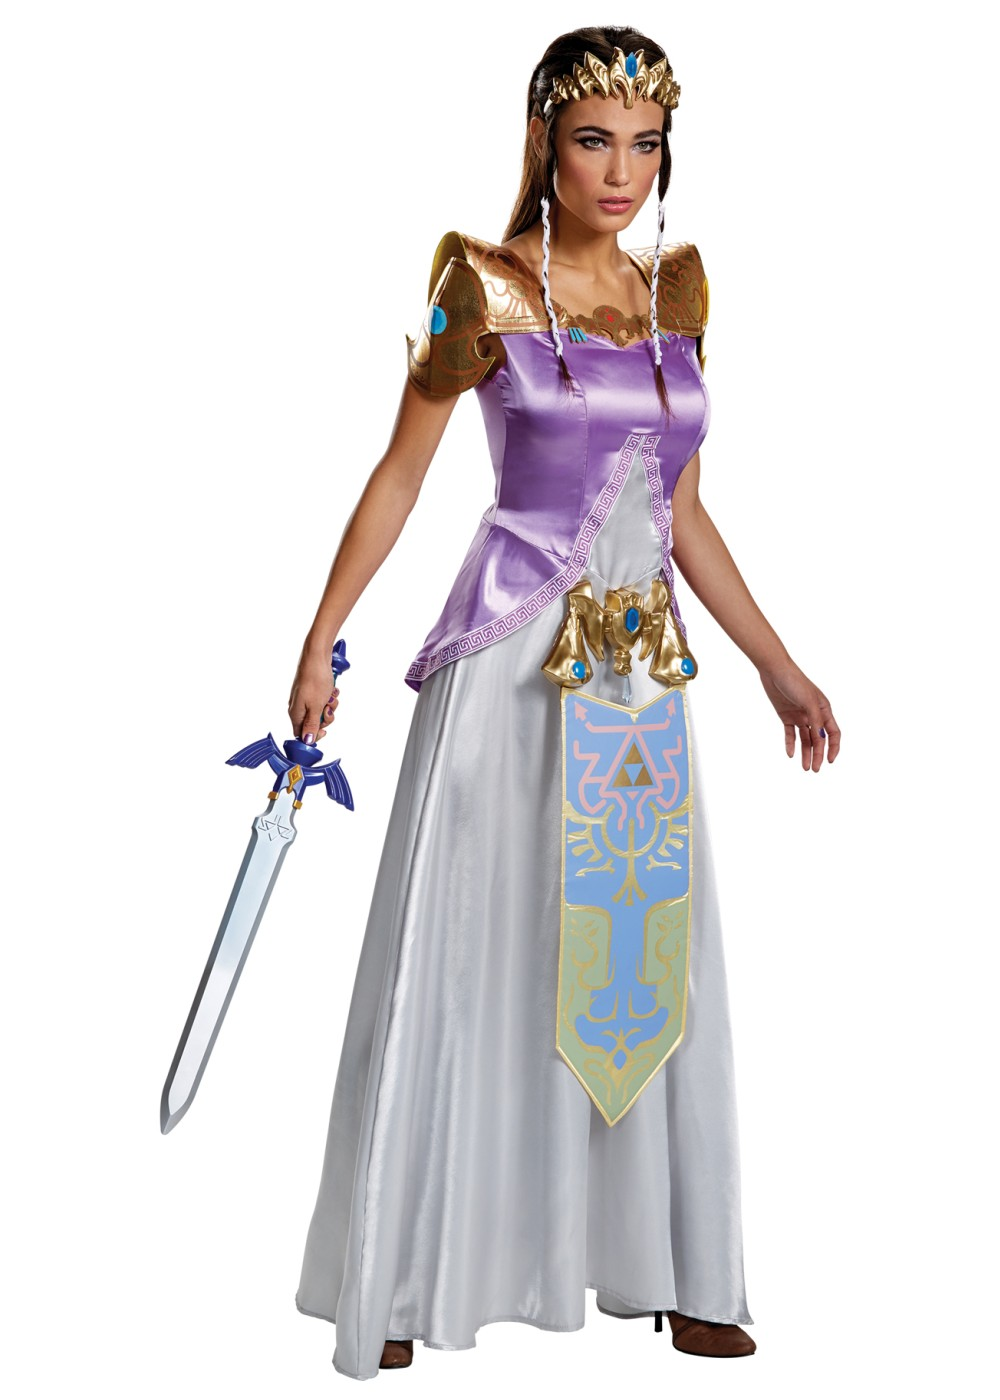 Princess zelda costume women